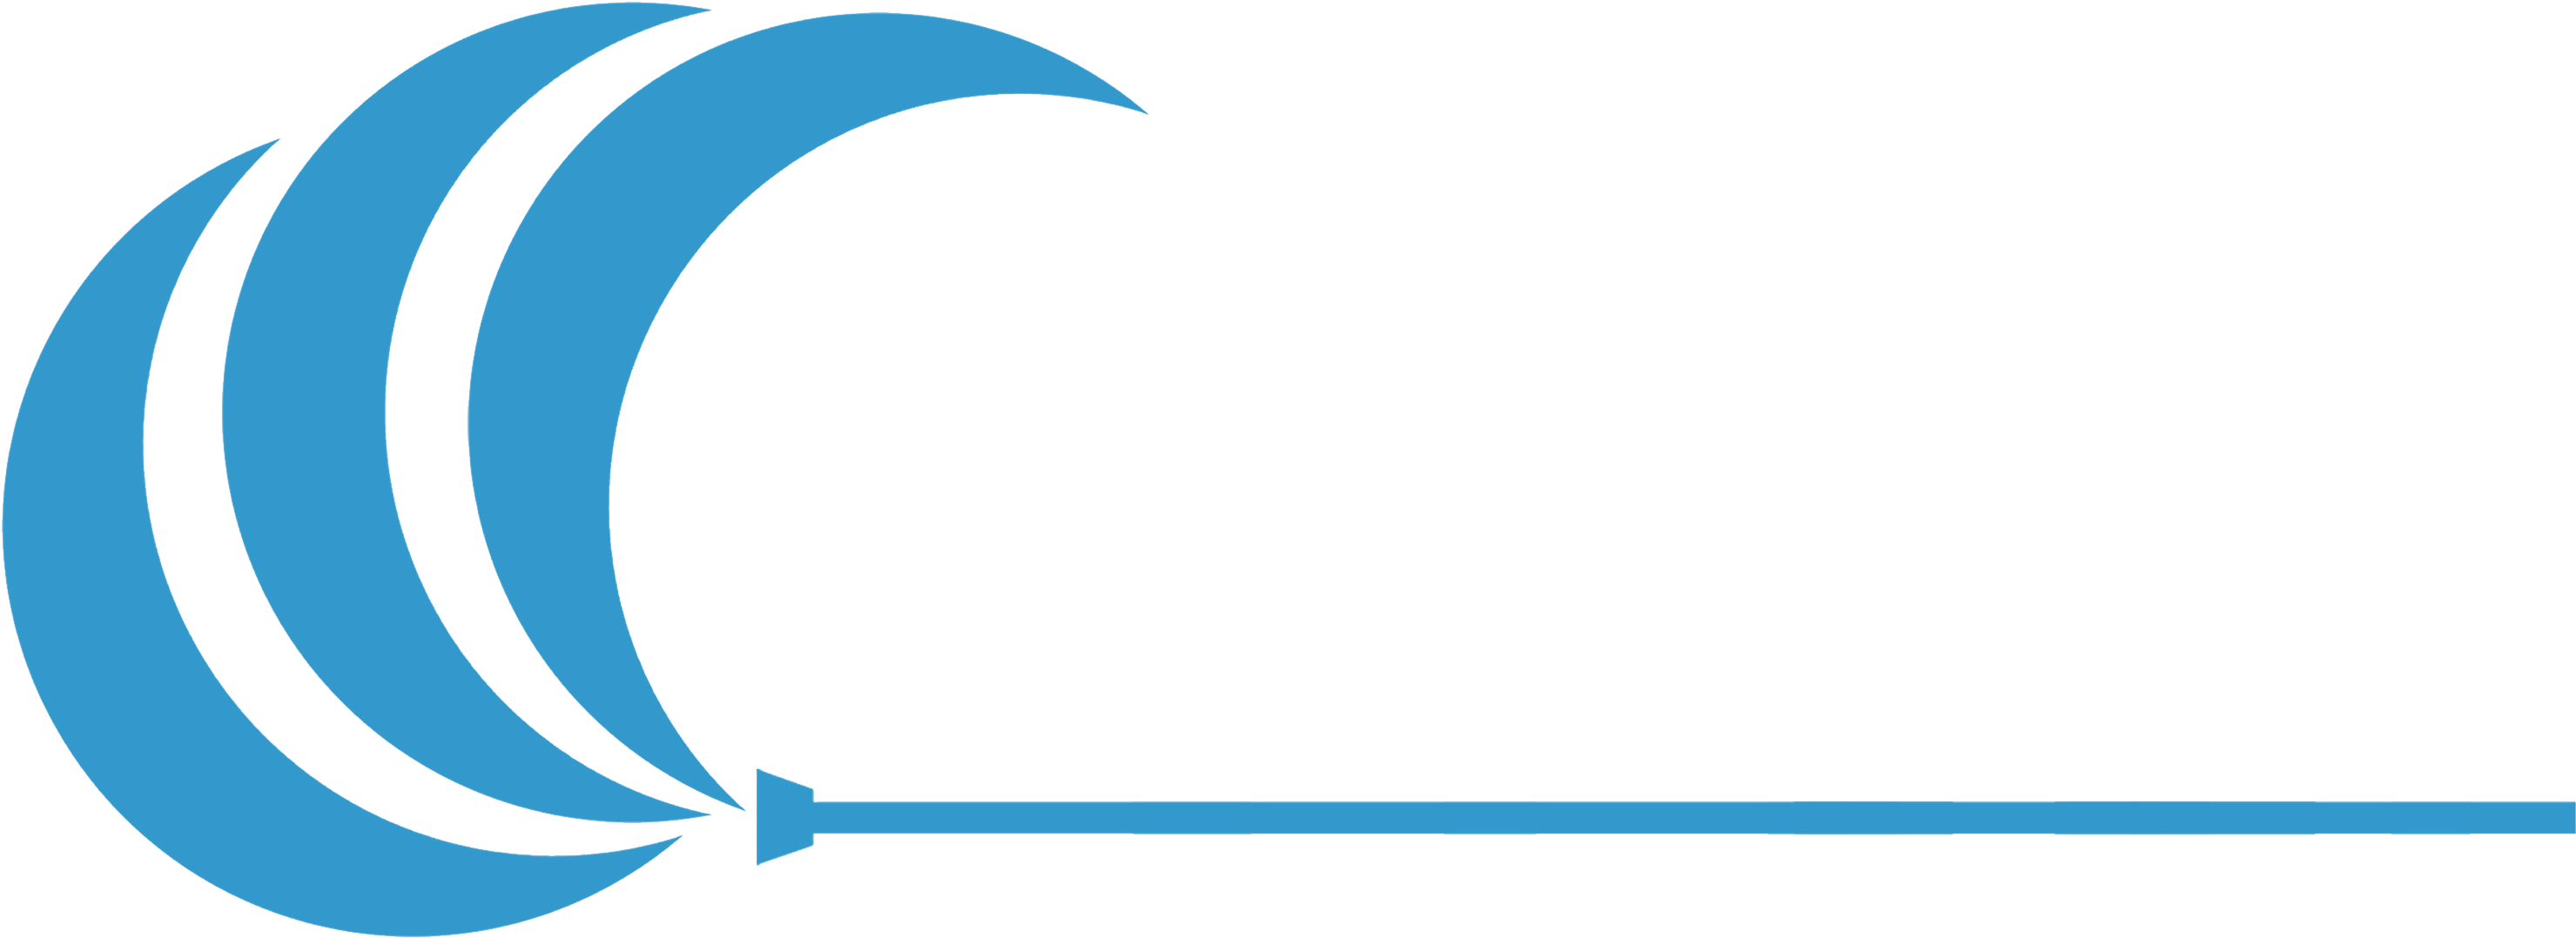 Exclusive Power Washing - Logo Clipart - Full Size Clipart ...